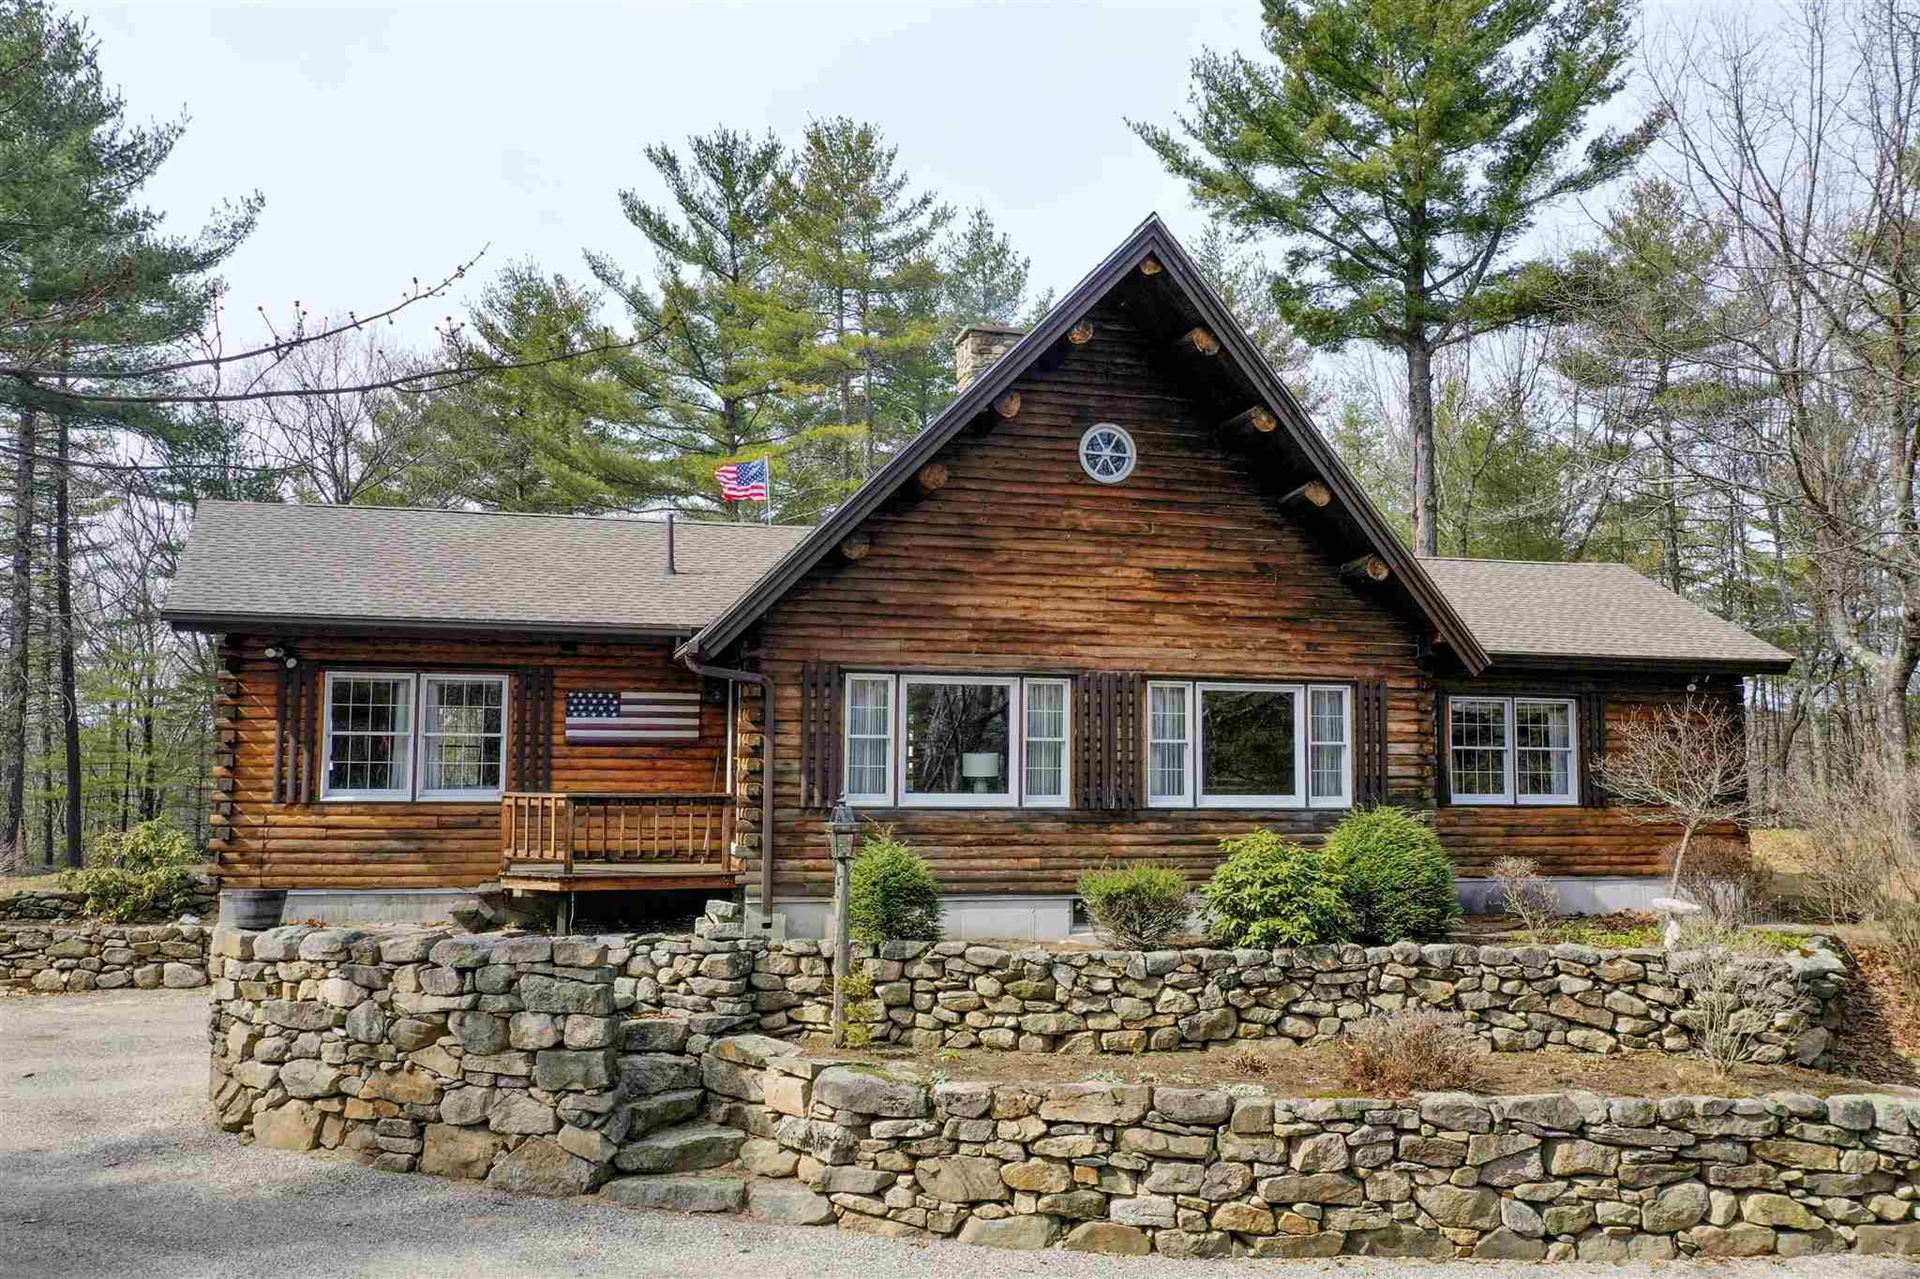 15 Old Mail Road, Amherst, NH 03031 - #: 4802681